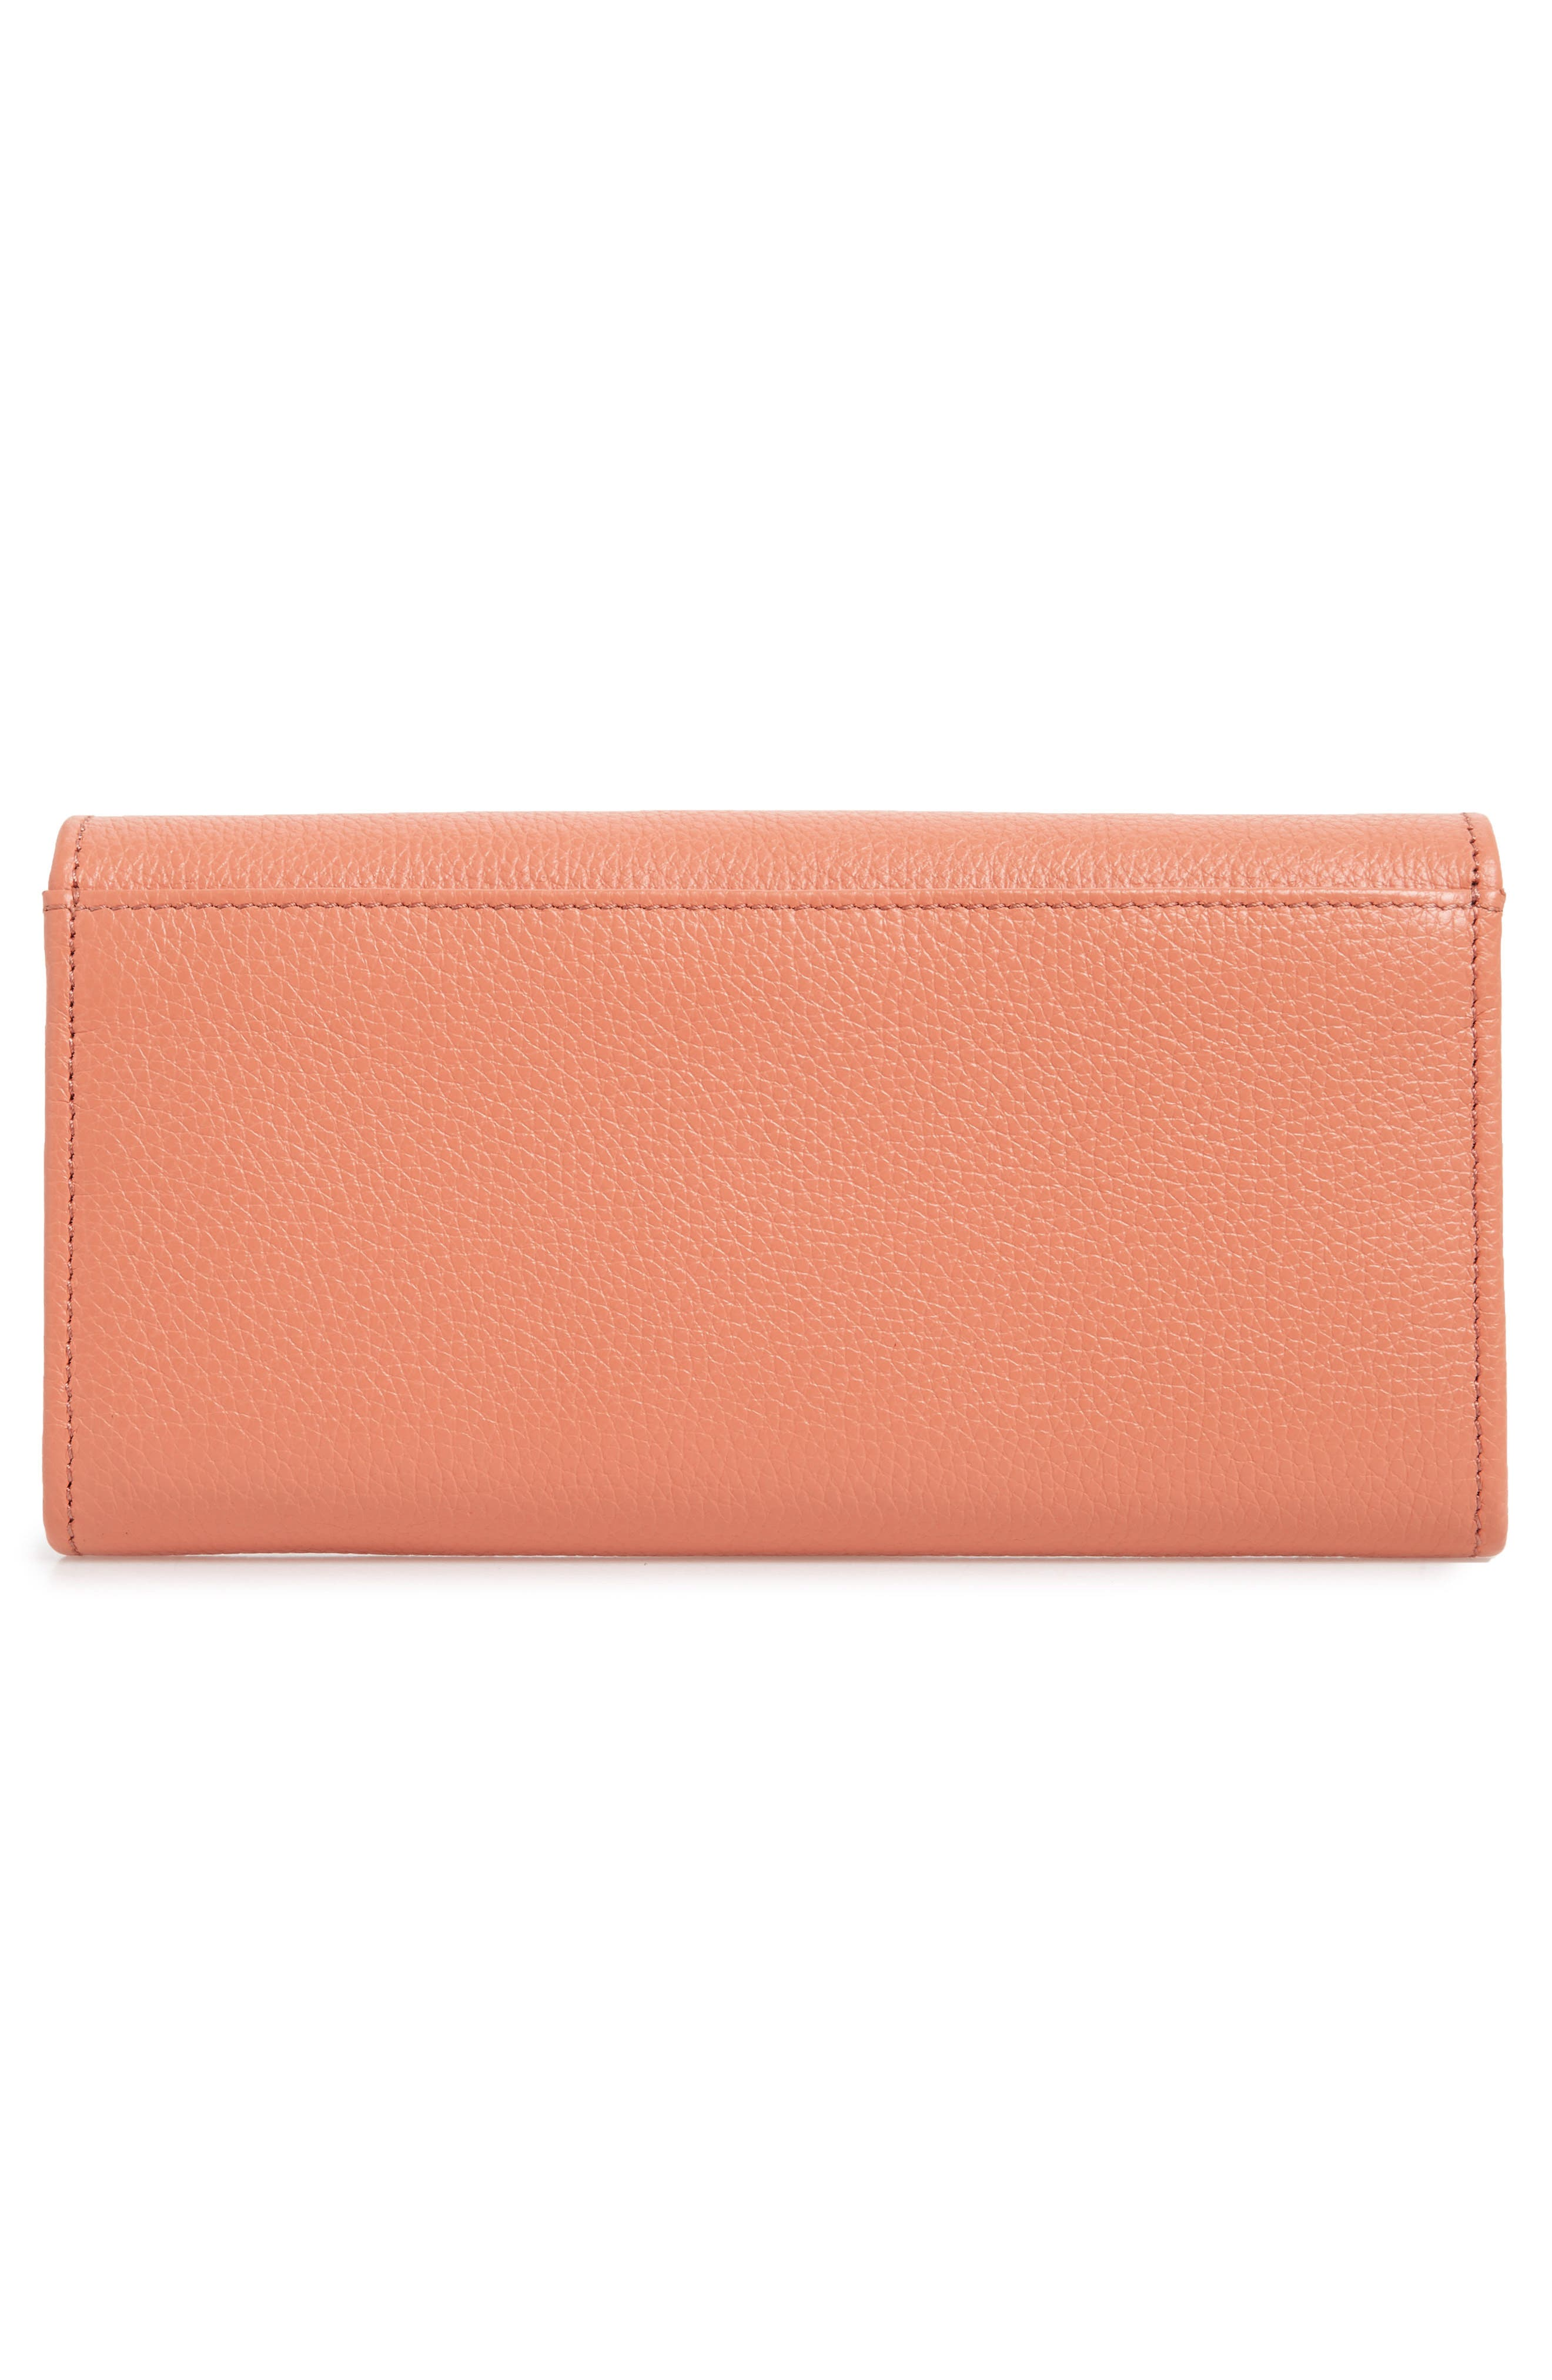 Lizzie Leather Continental Wallet,                             Alternate thumbnail 9, color,                             Canyon Sunset